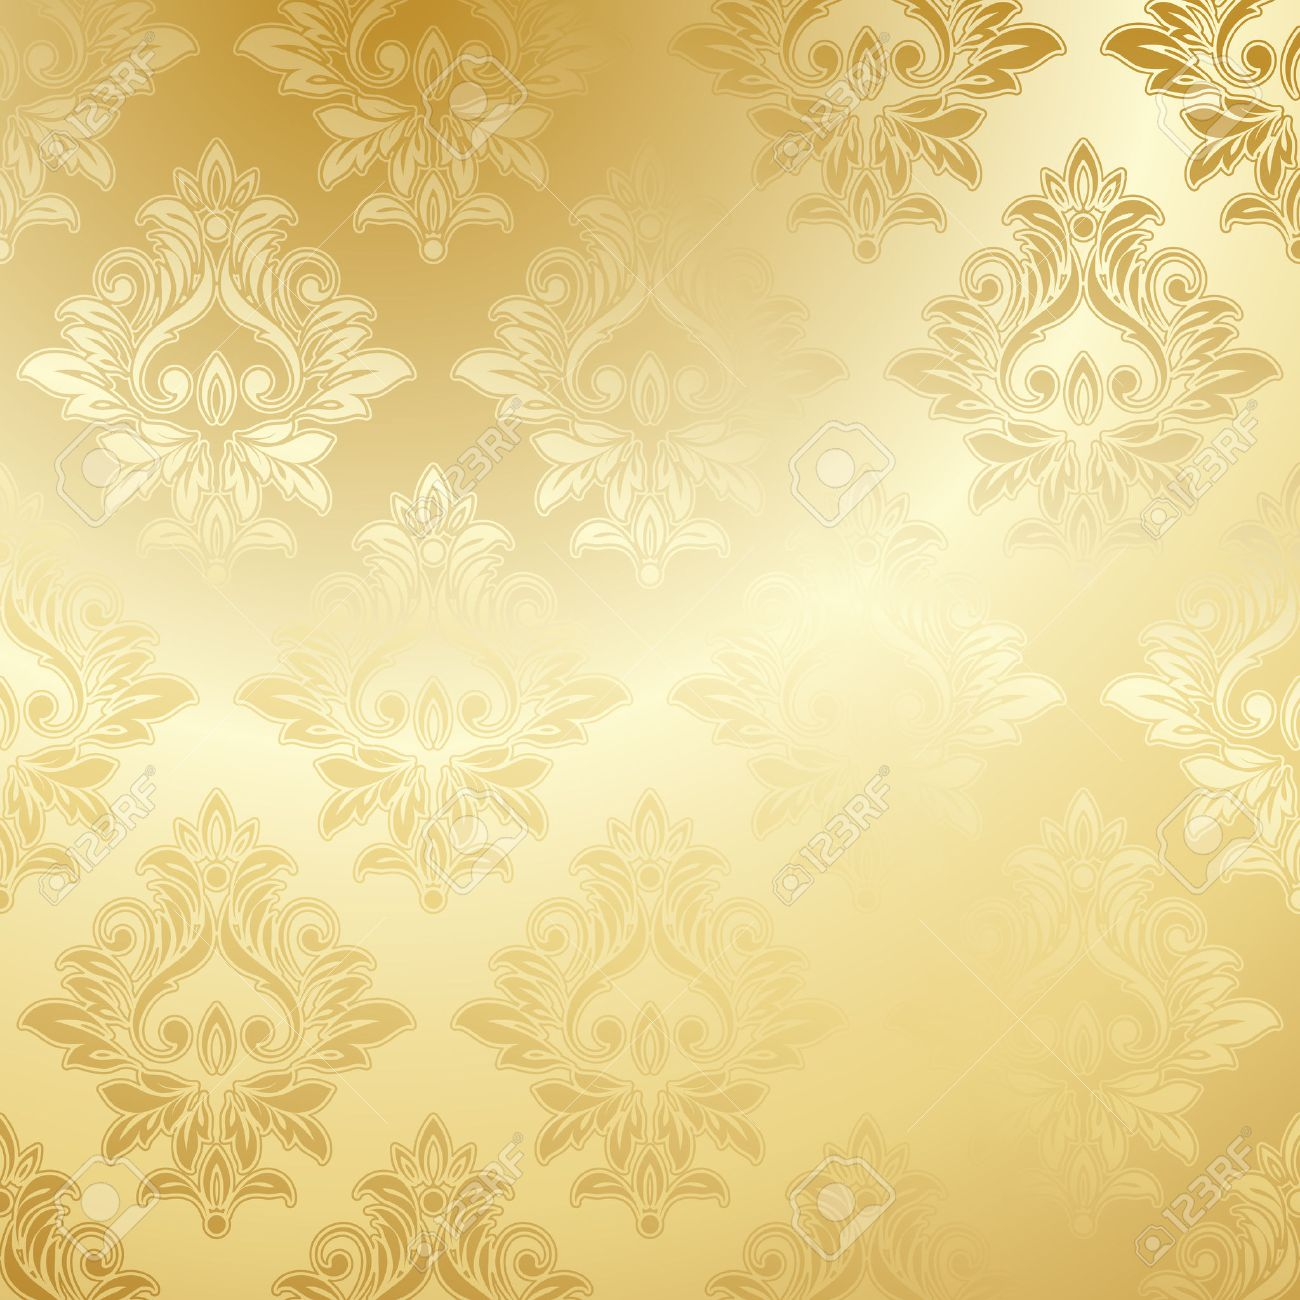 Luxury Golden Wallpaper Vintage Floral Pattern Vector Background Stock